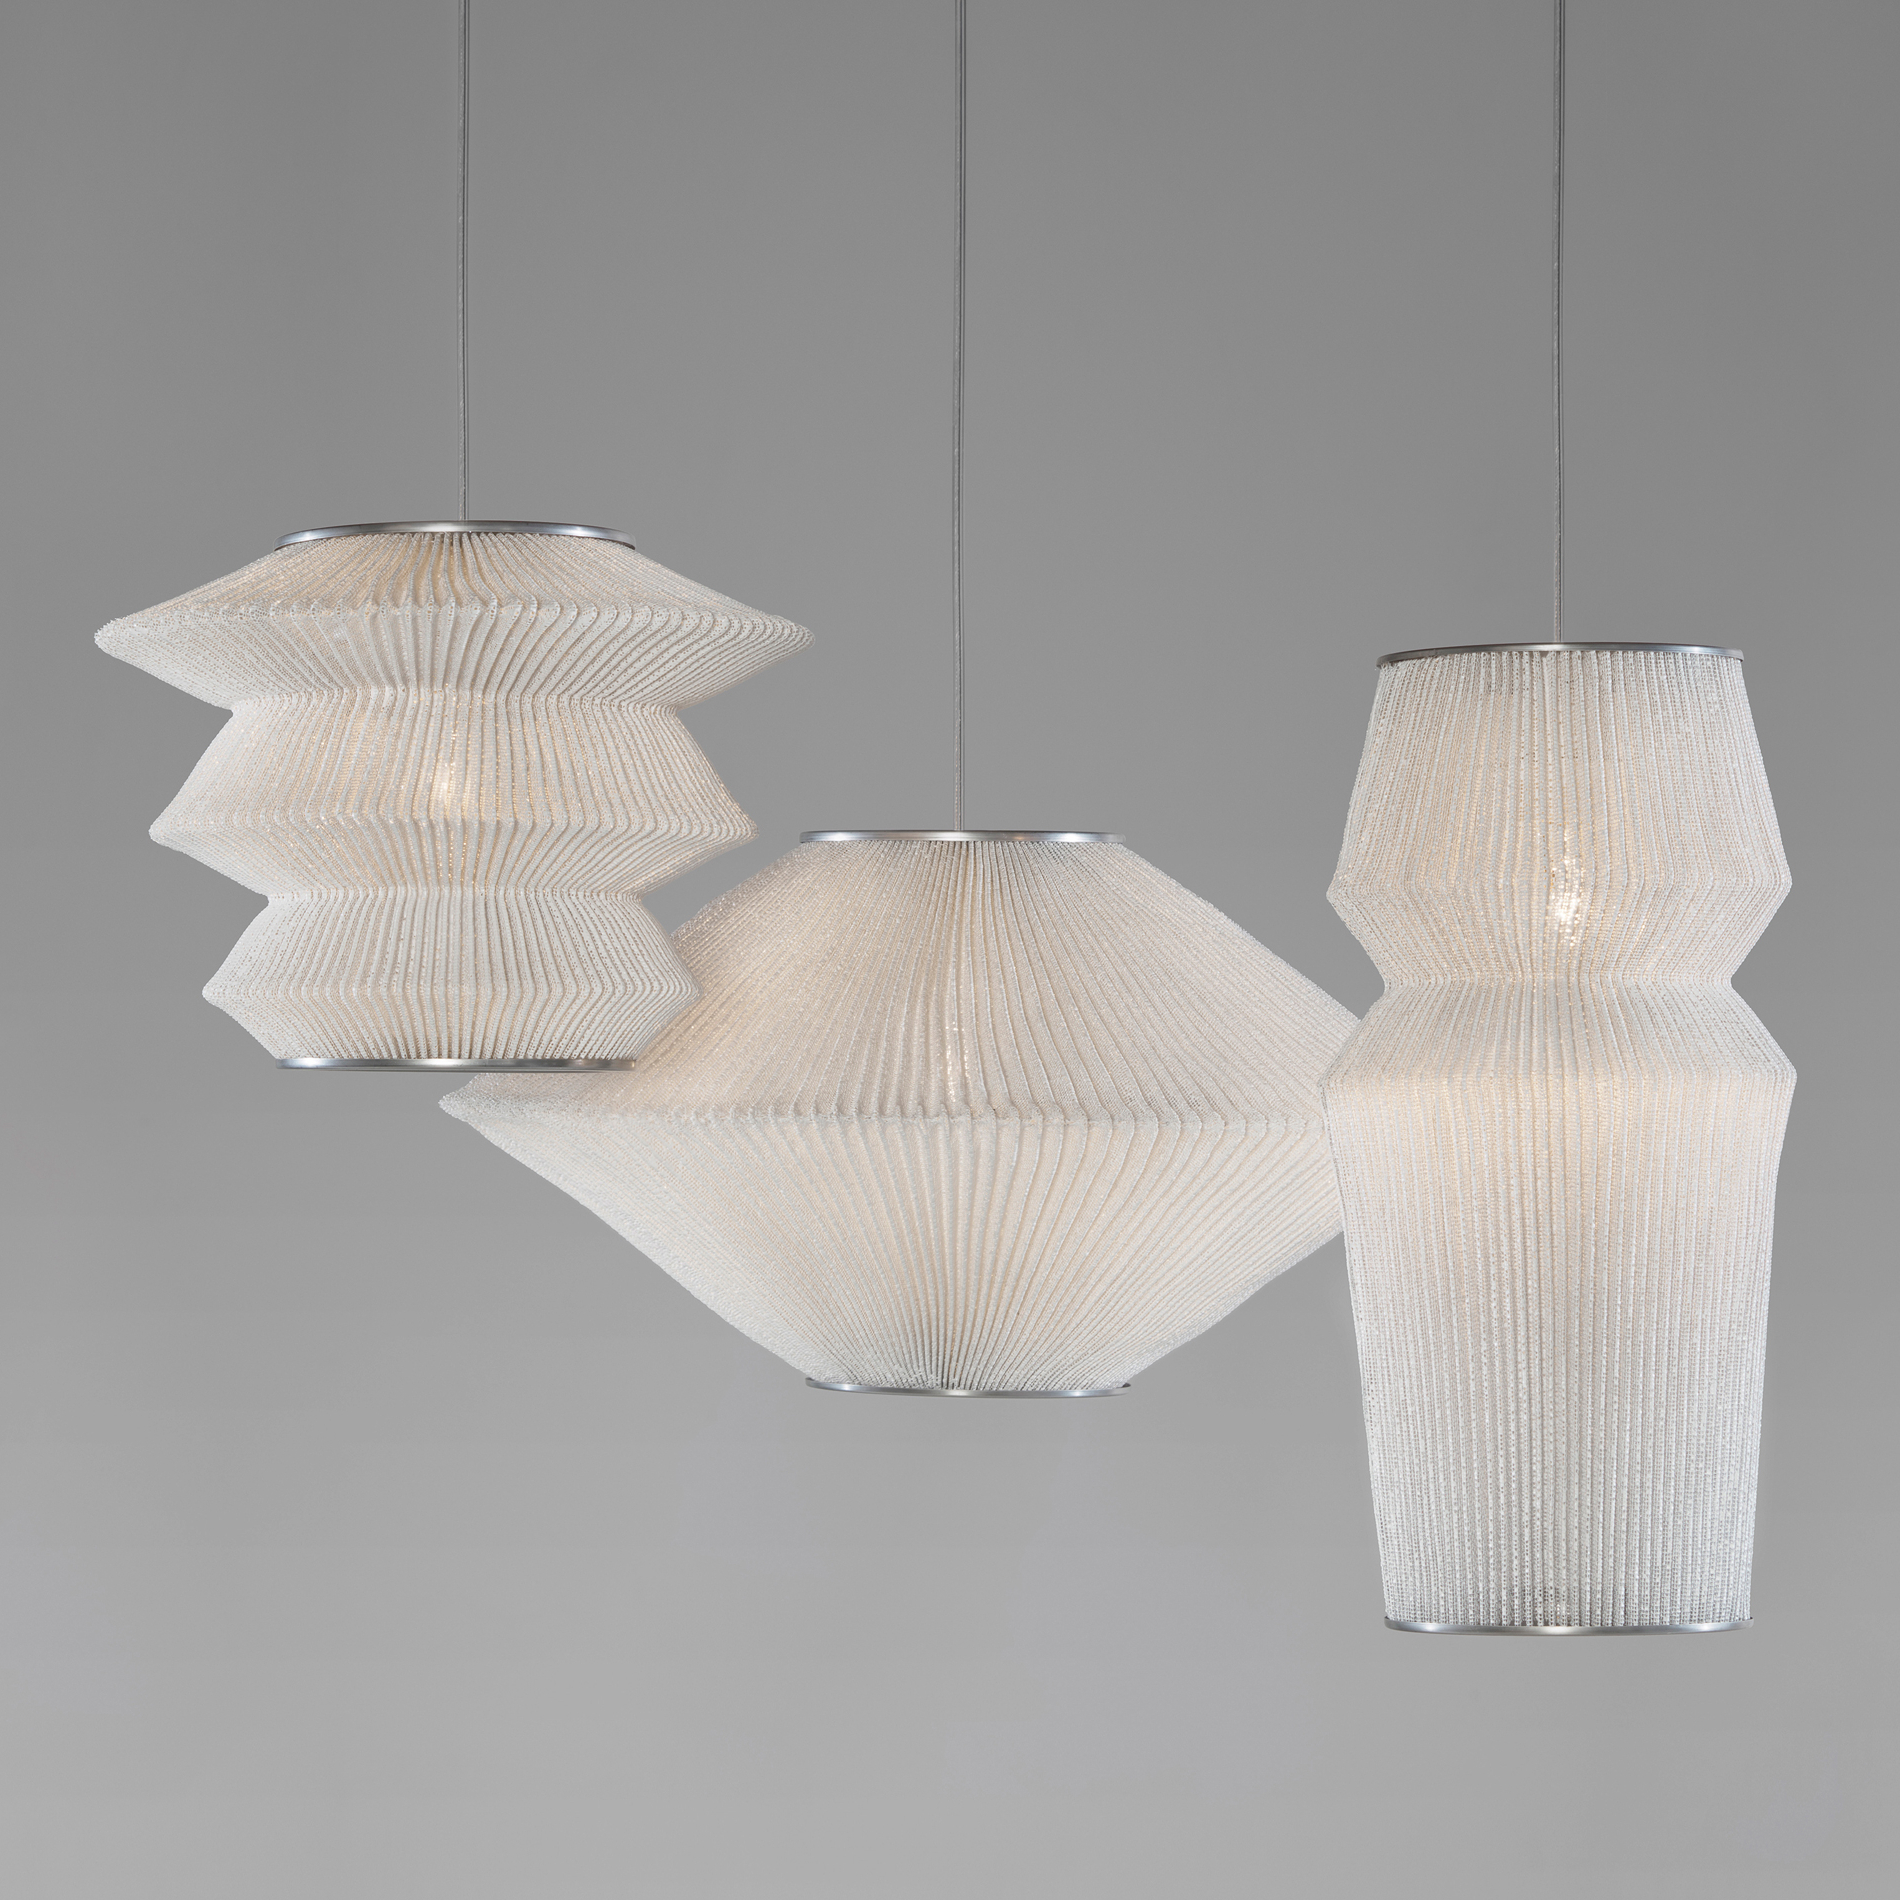 Best And Newest Arturo Alvarez Lighting – Gnubies Pertaining To Alverez 4 Light Drum Chandeliers (View 6 of 20)